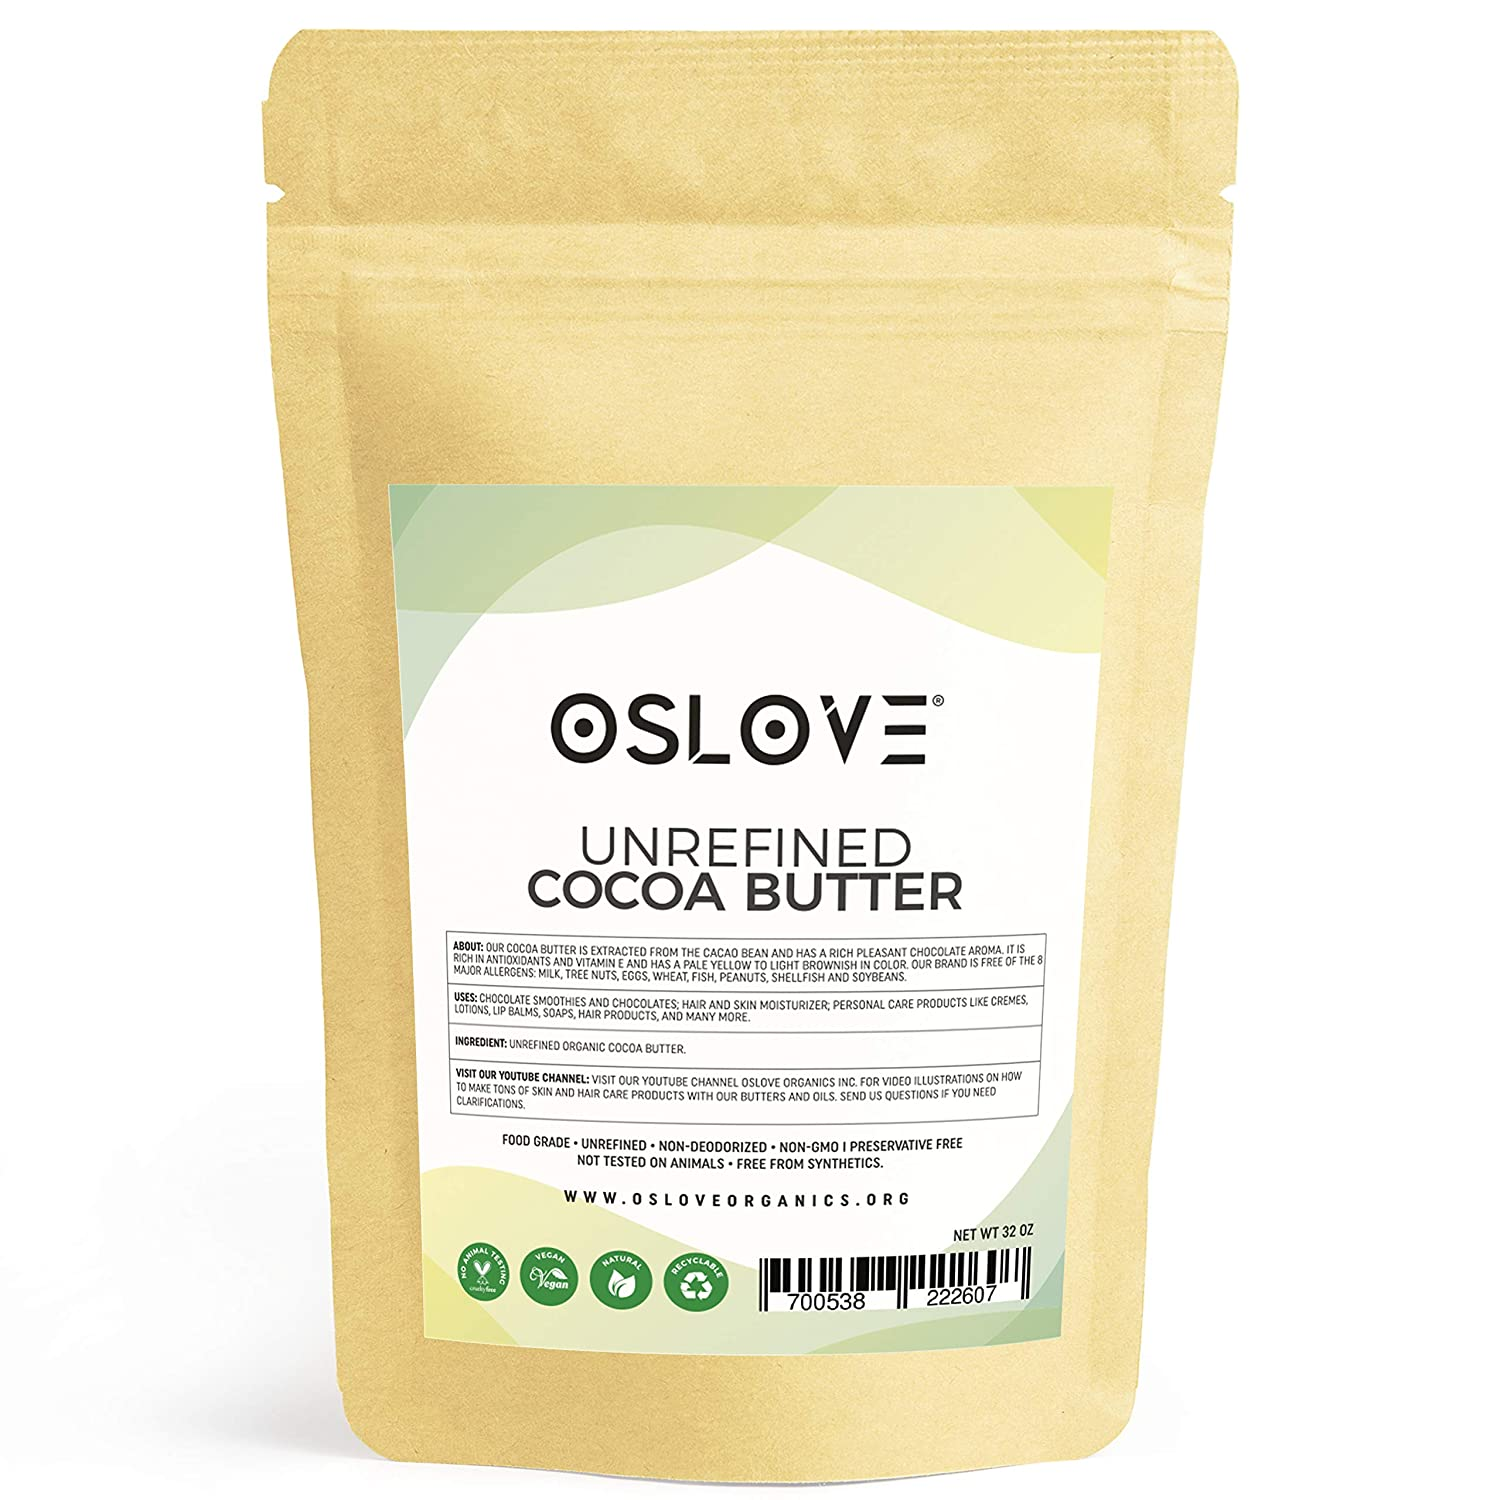 Organic Cocoa Butter FOOD GRADE 2LB by Oslove Organics - Raw, Non-Deodorized, Unrefined - Best Cocoa Butter for DIY body butter and delicous Home-made Chocolate